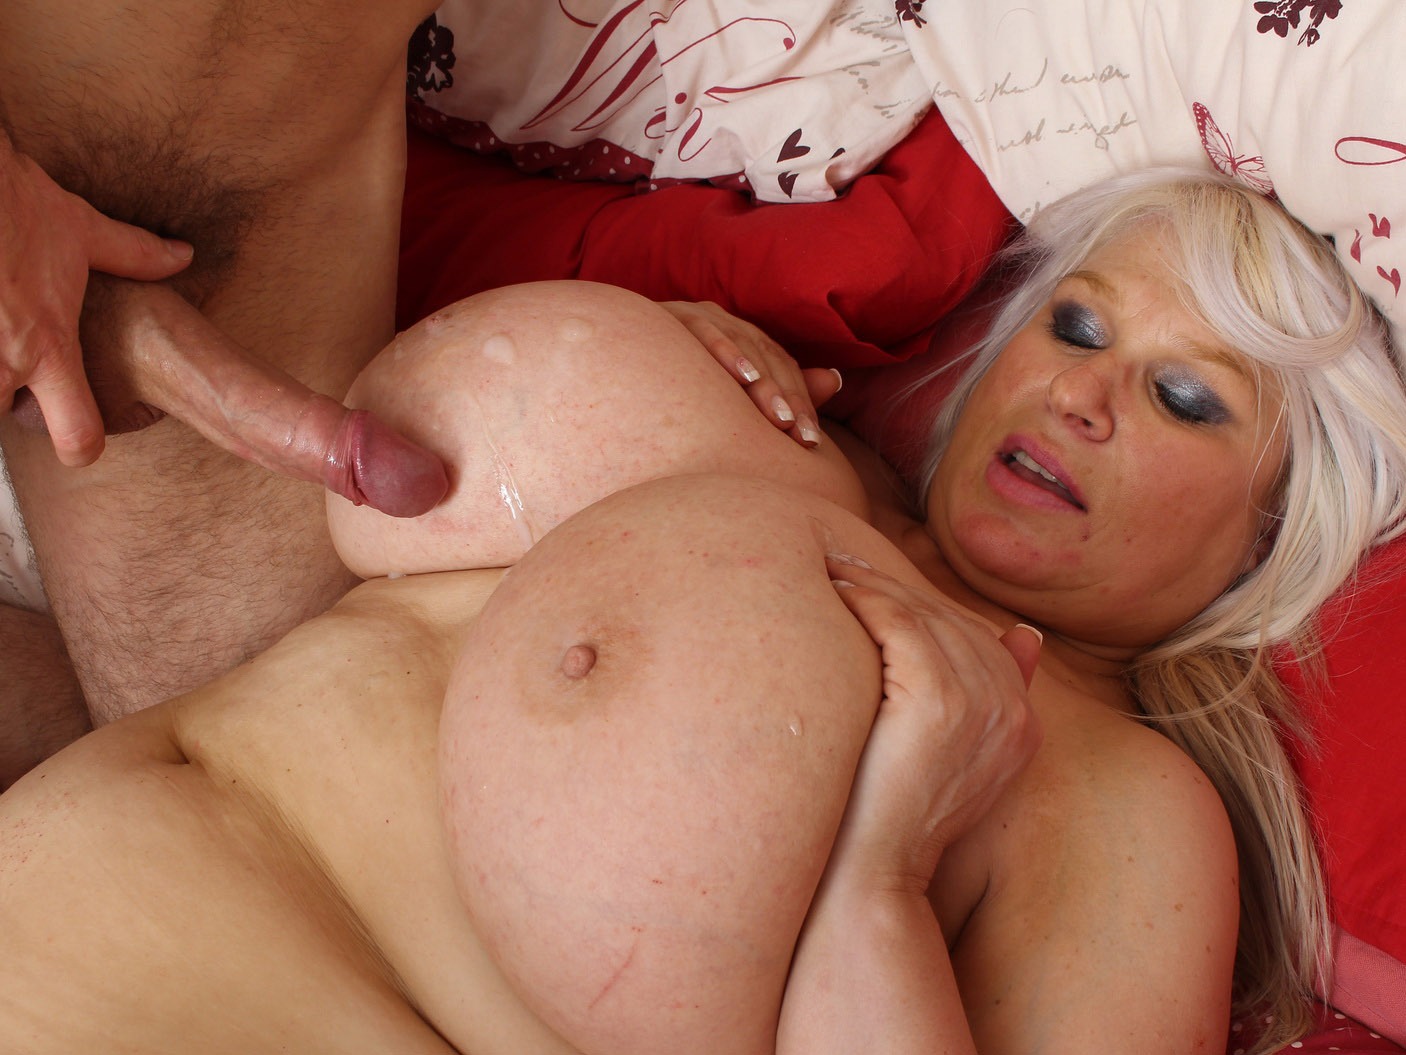 Blonde with big boobs siri dispenses some blowjob and titty fucking action